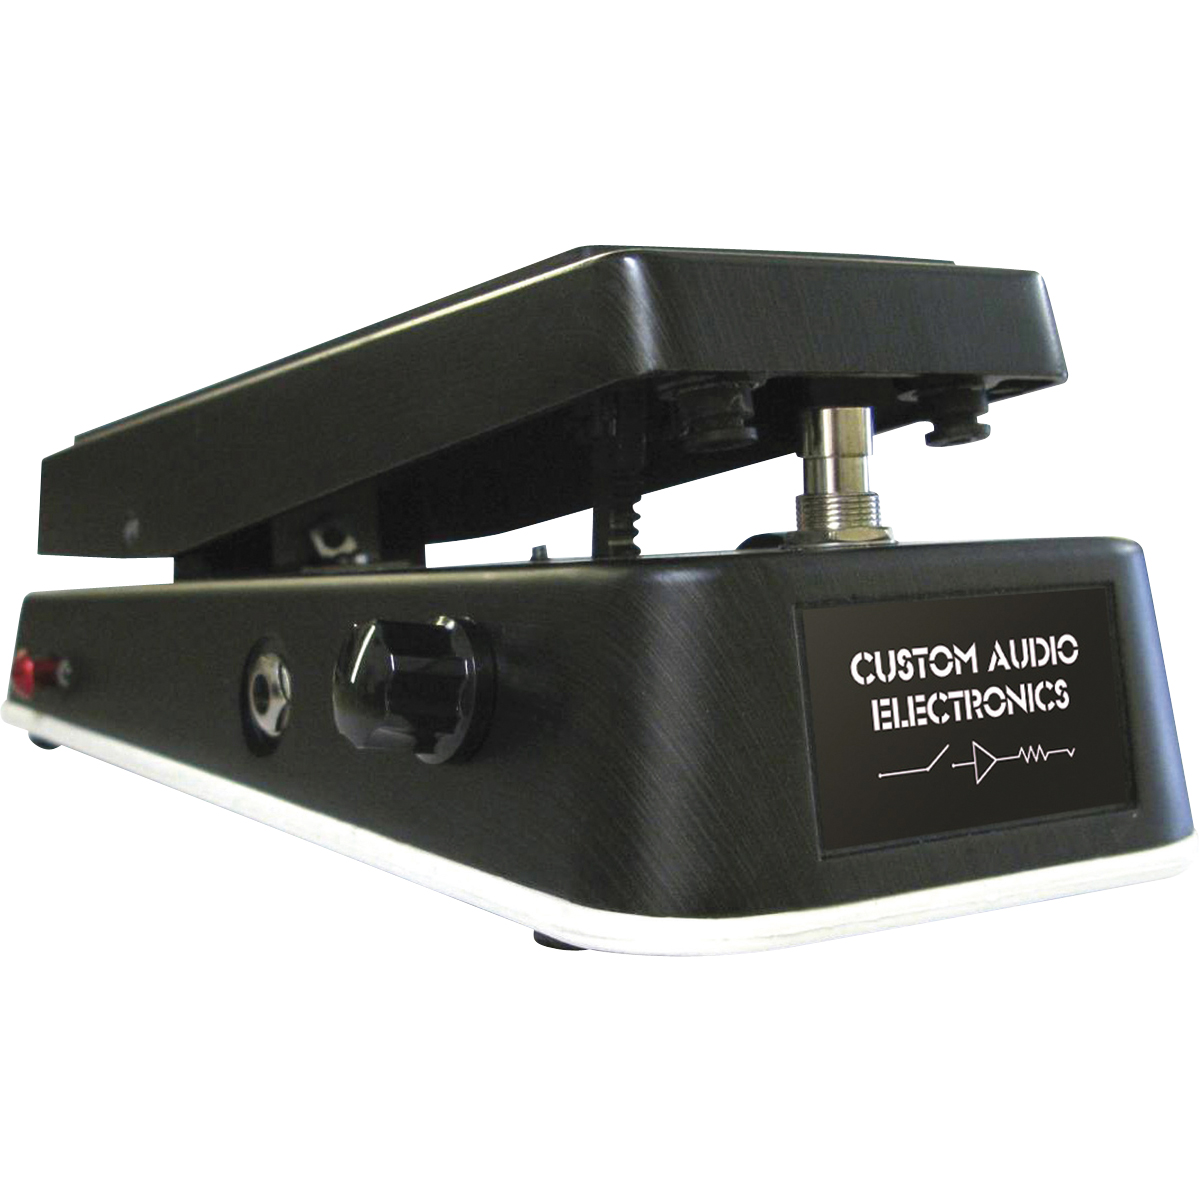 Dunlop MC404 Custom Audio Electronics Wah Pedaal